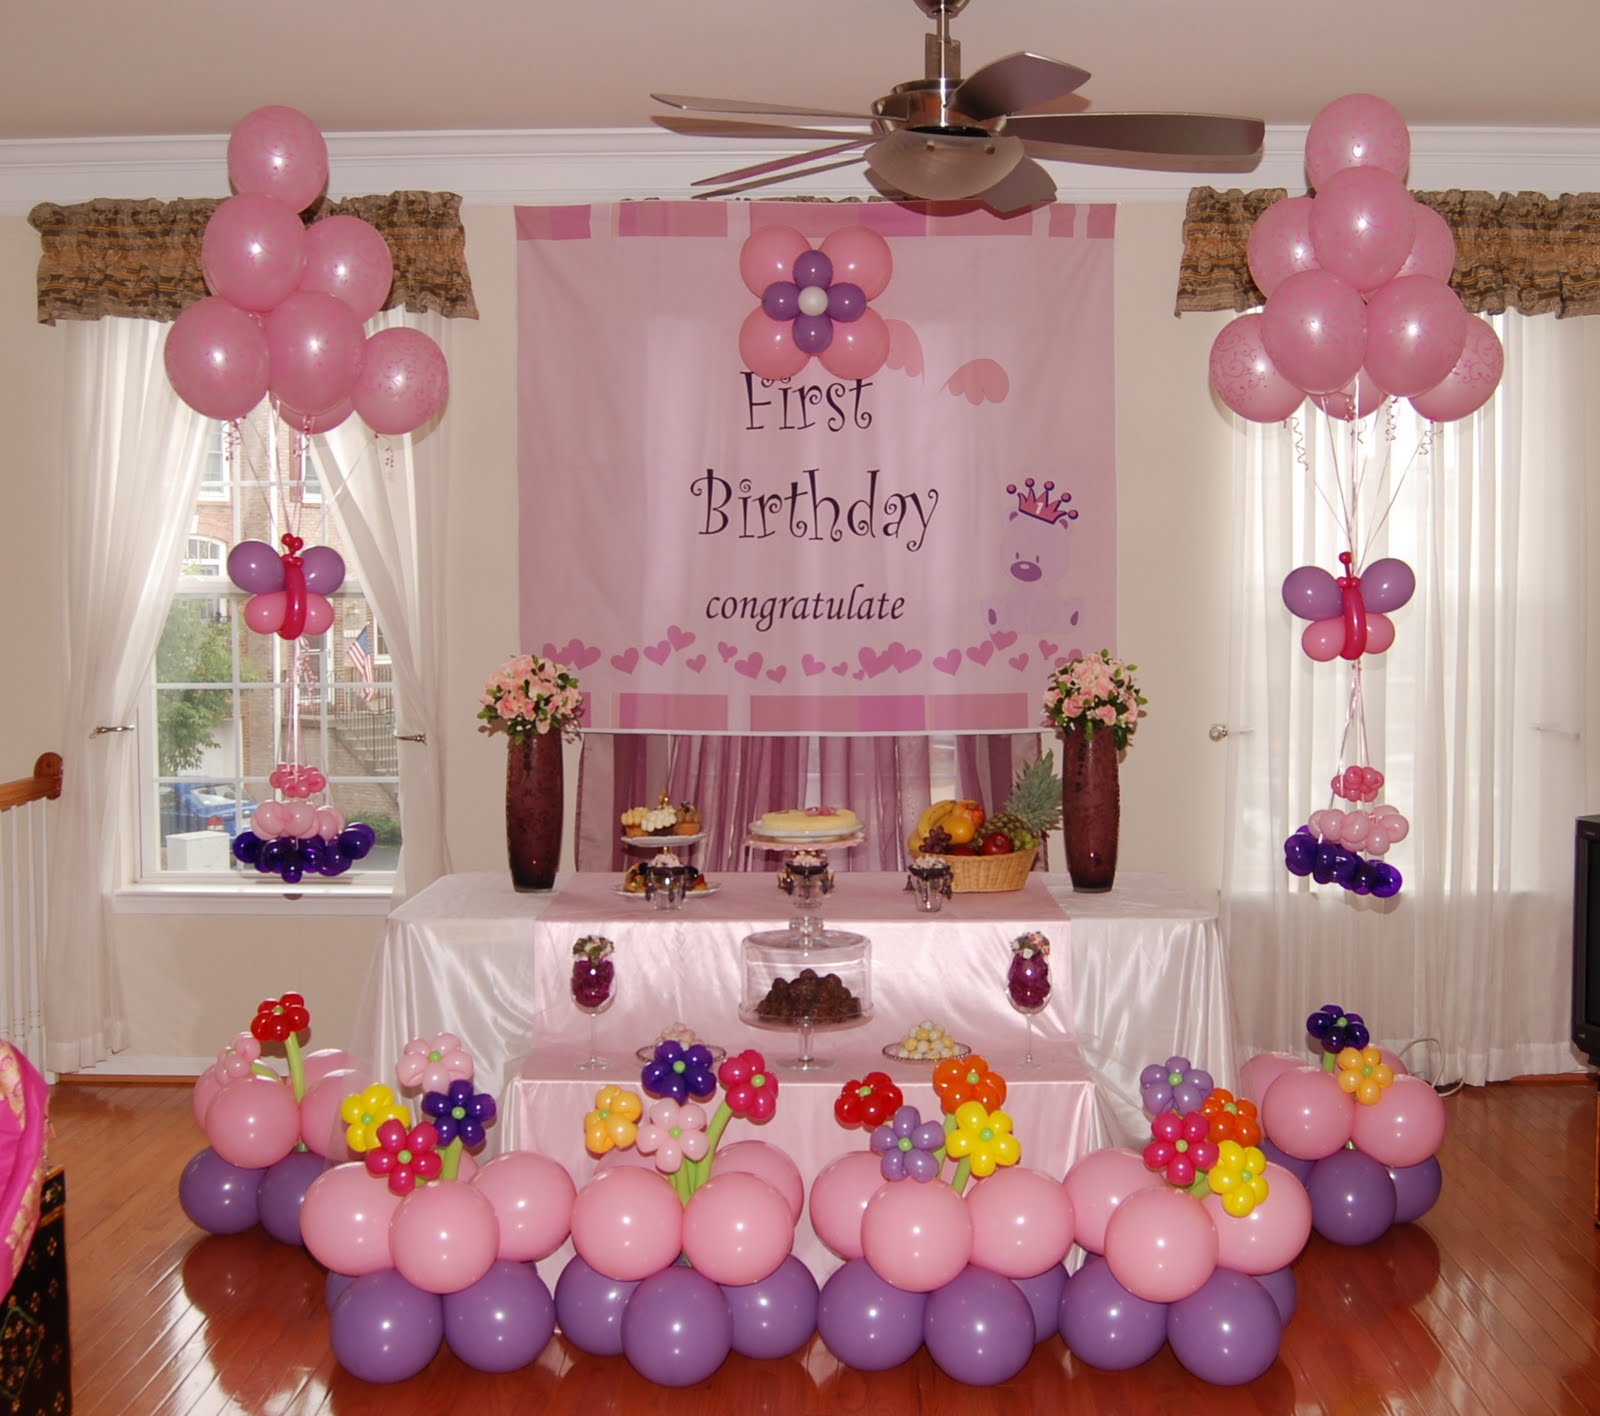 How to create a birthday party checklist great party ideas for 1st bday decoration ideas